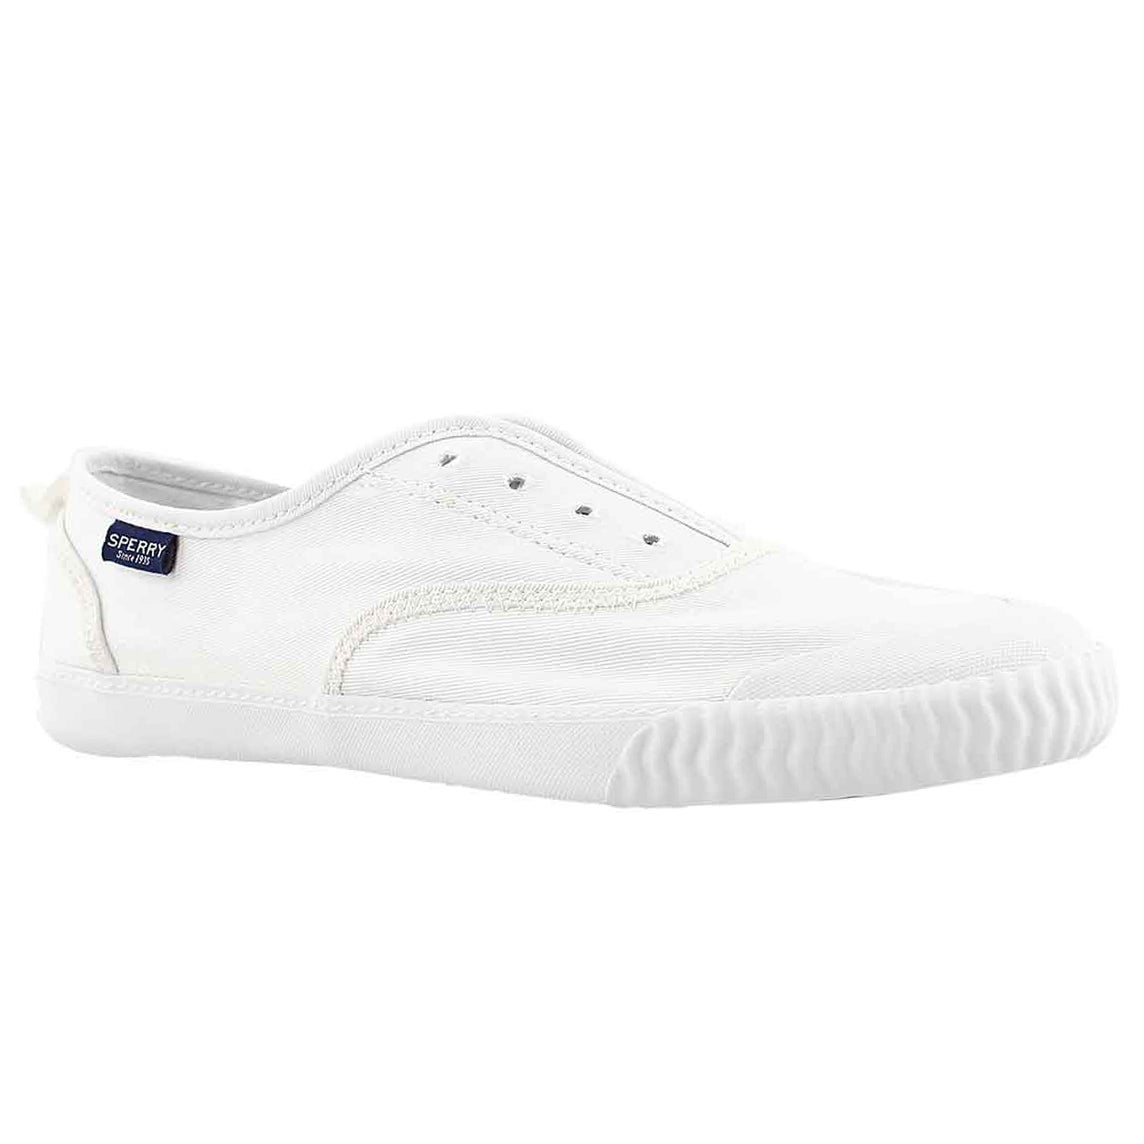 Lds Sayel Clew white wash sneaker